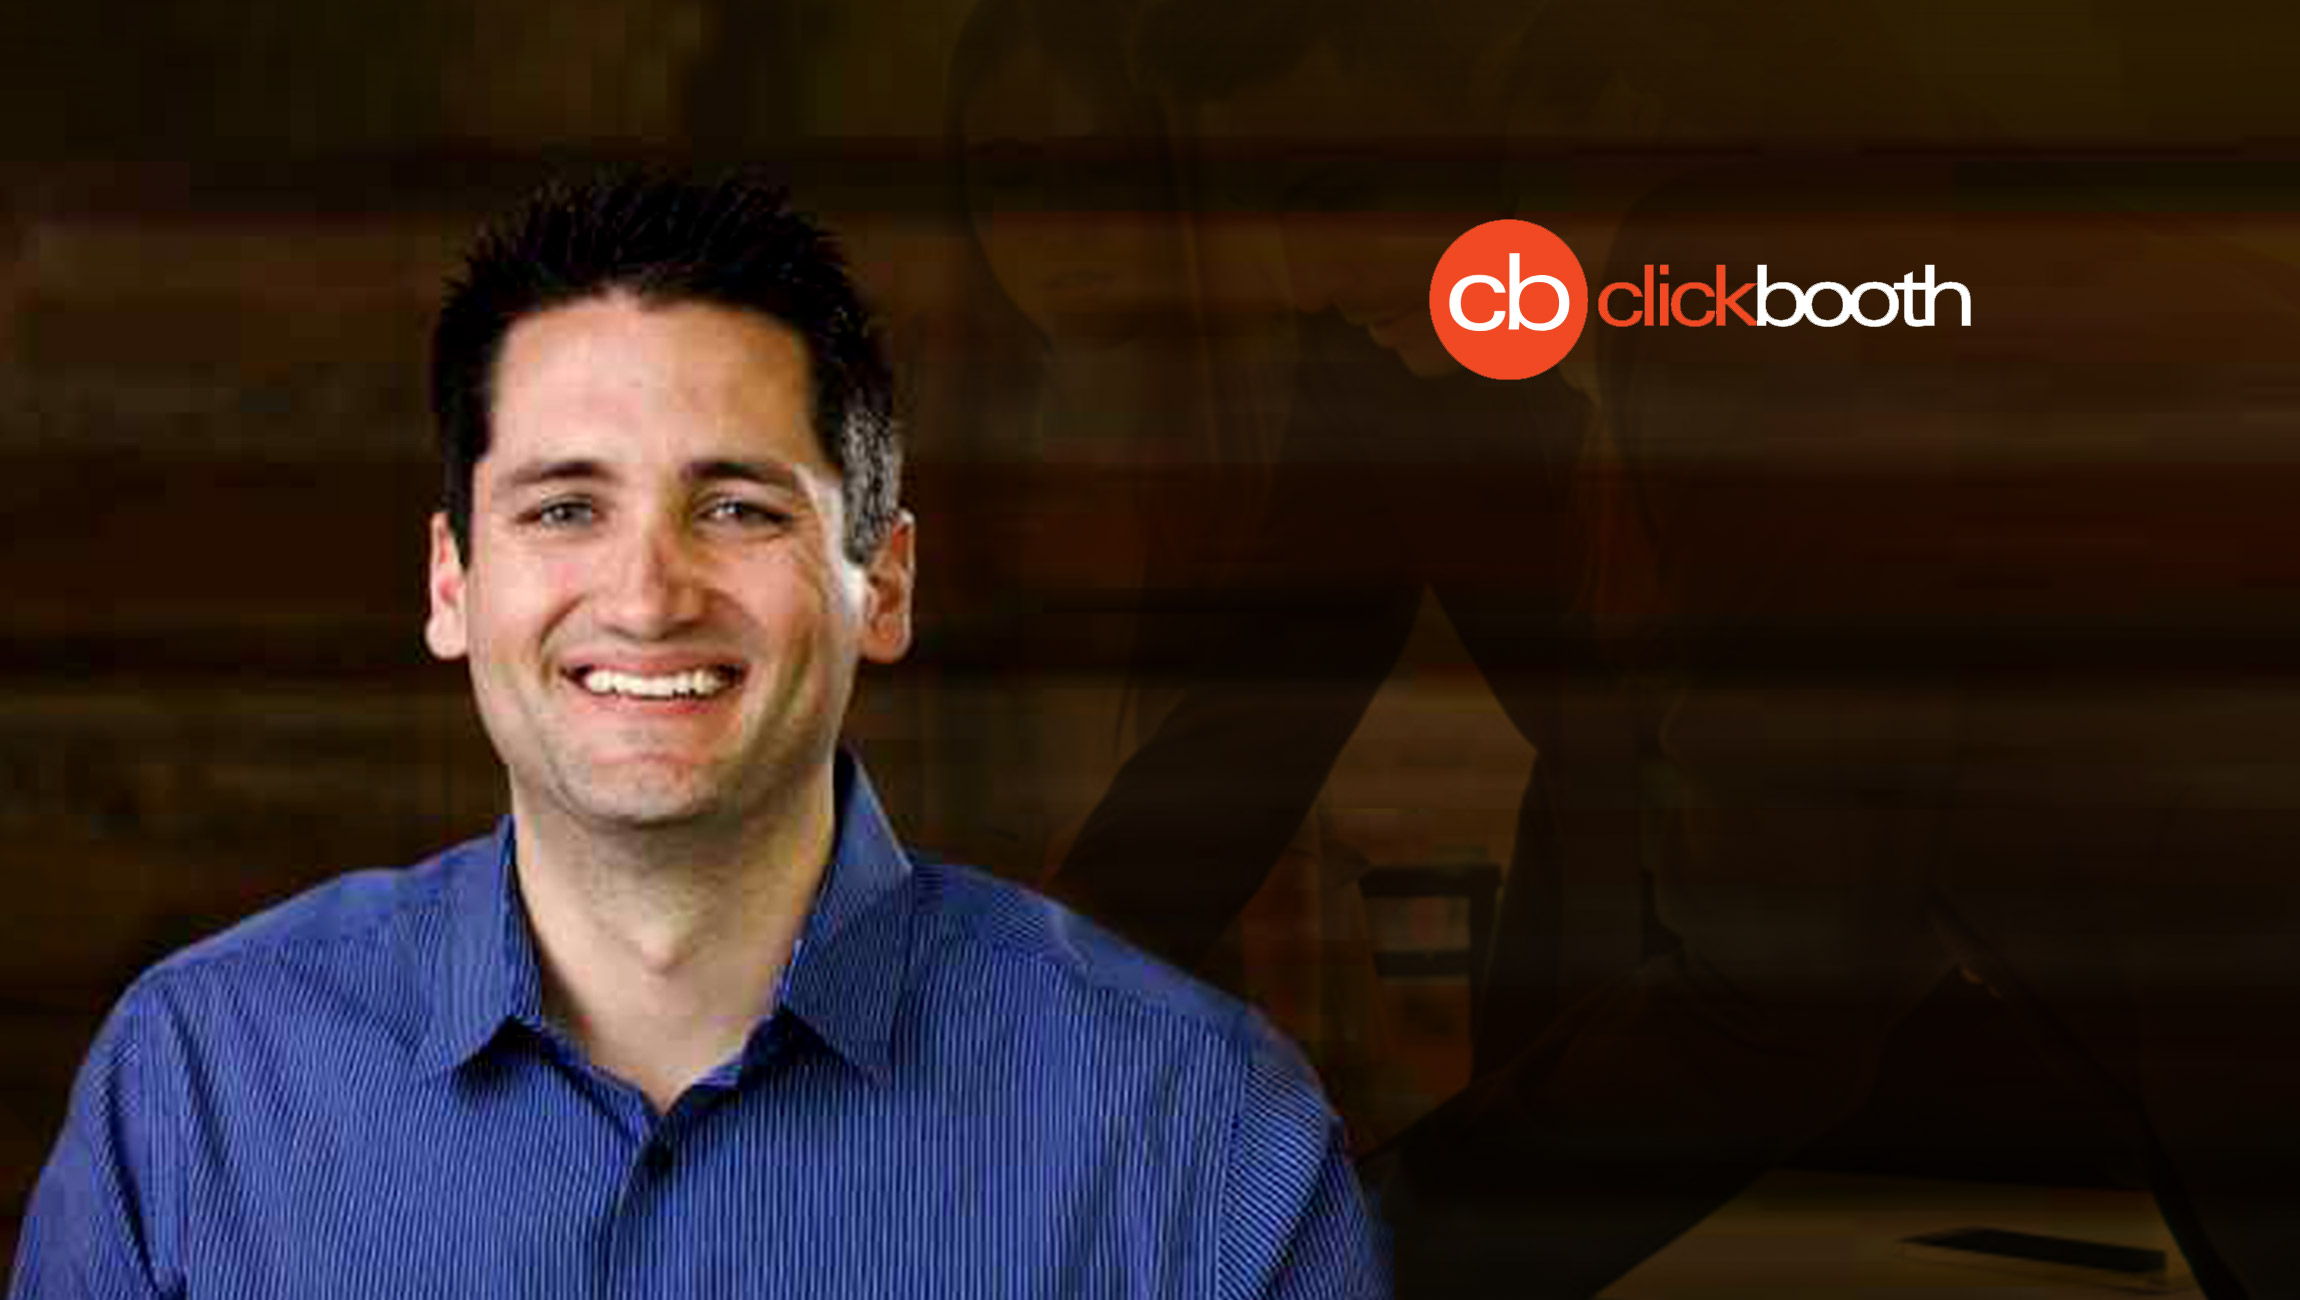 Brad Dobbins Promoted to President of Clickbooth